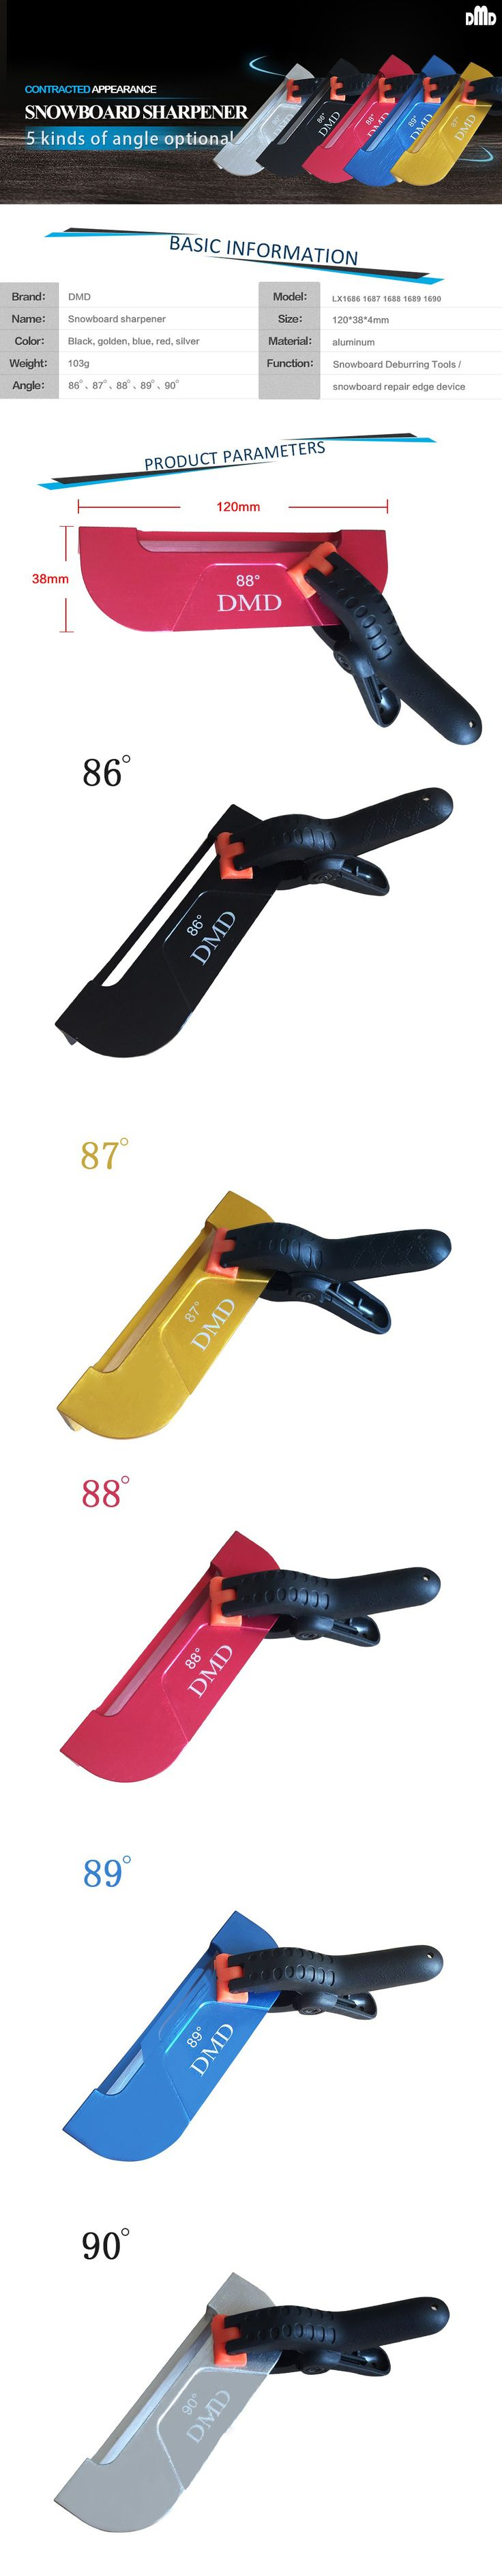 Snowboard 86 87 88 89 90 Side Edge Tuning Tools Skiing Ice Repair Edge Guide Tools without  Whetston